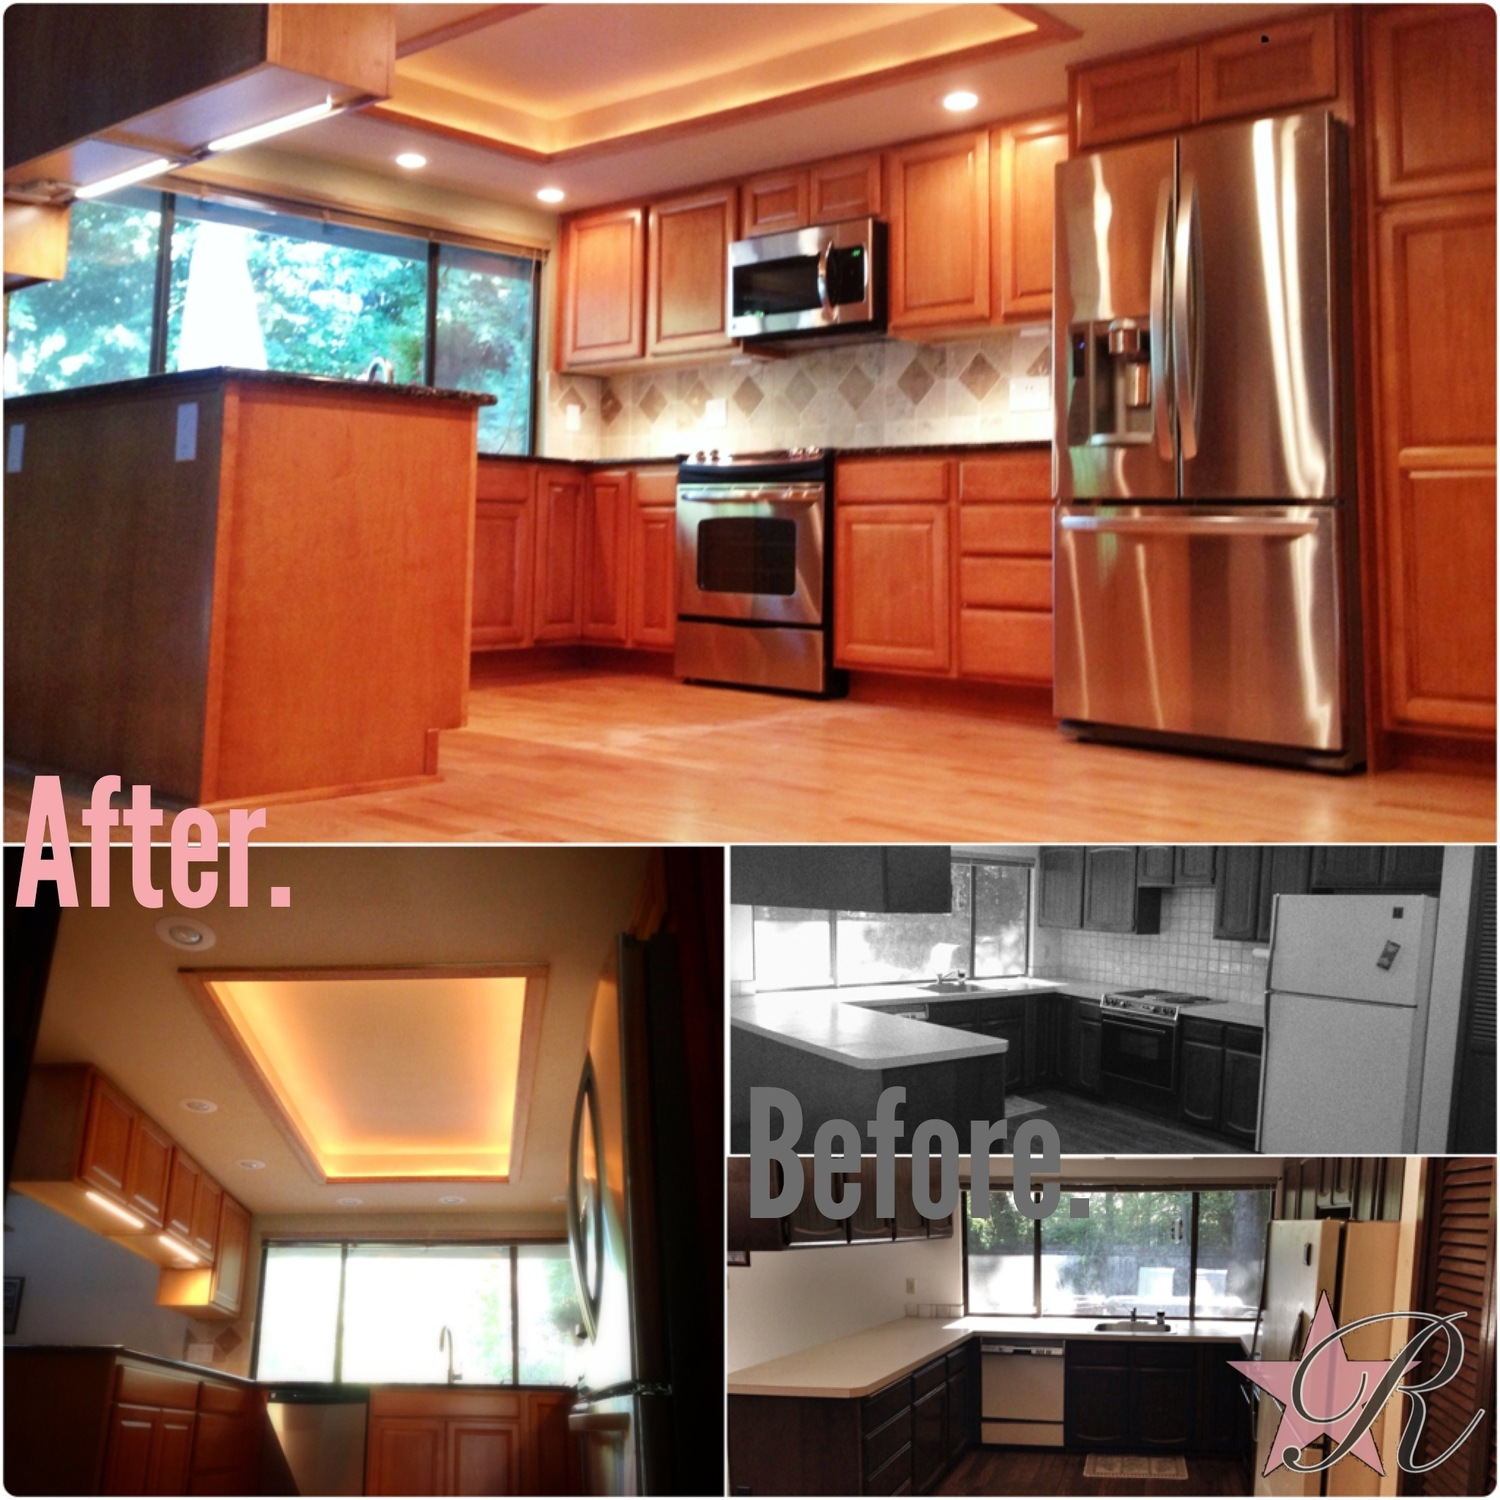 Fluorescent Lights For Kitchens Kitchen renovation rockstar remodel this kitchen was revitalized with new cabinets tile and flooring when the fluorescent workwithnaturefo